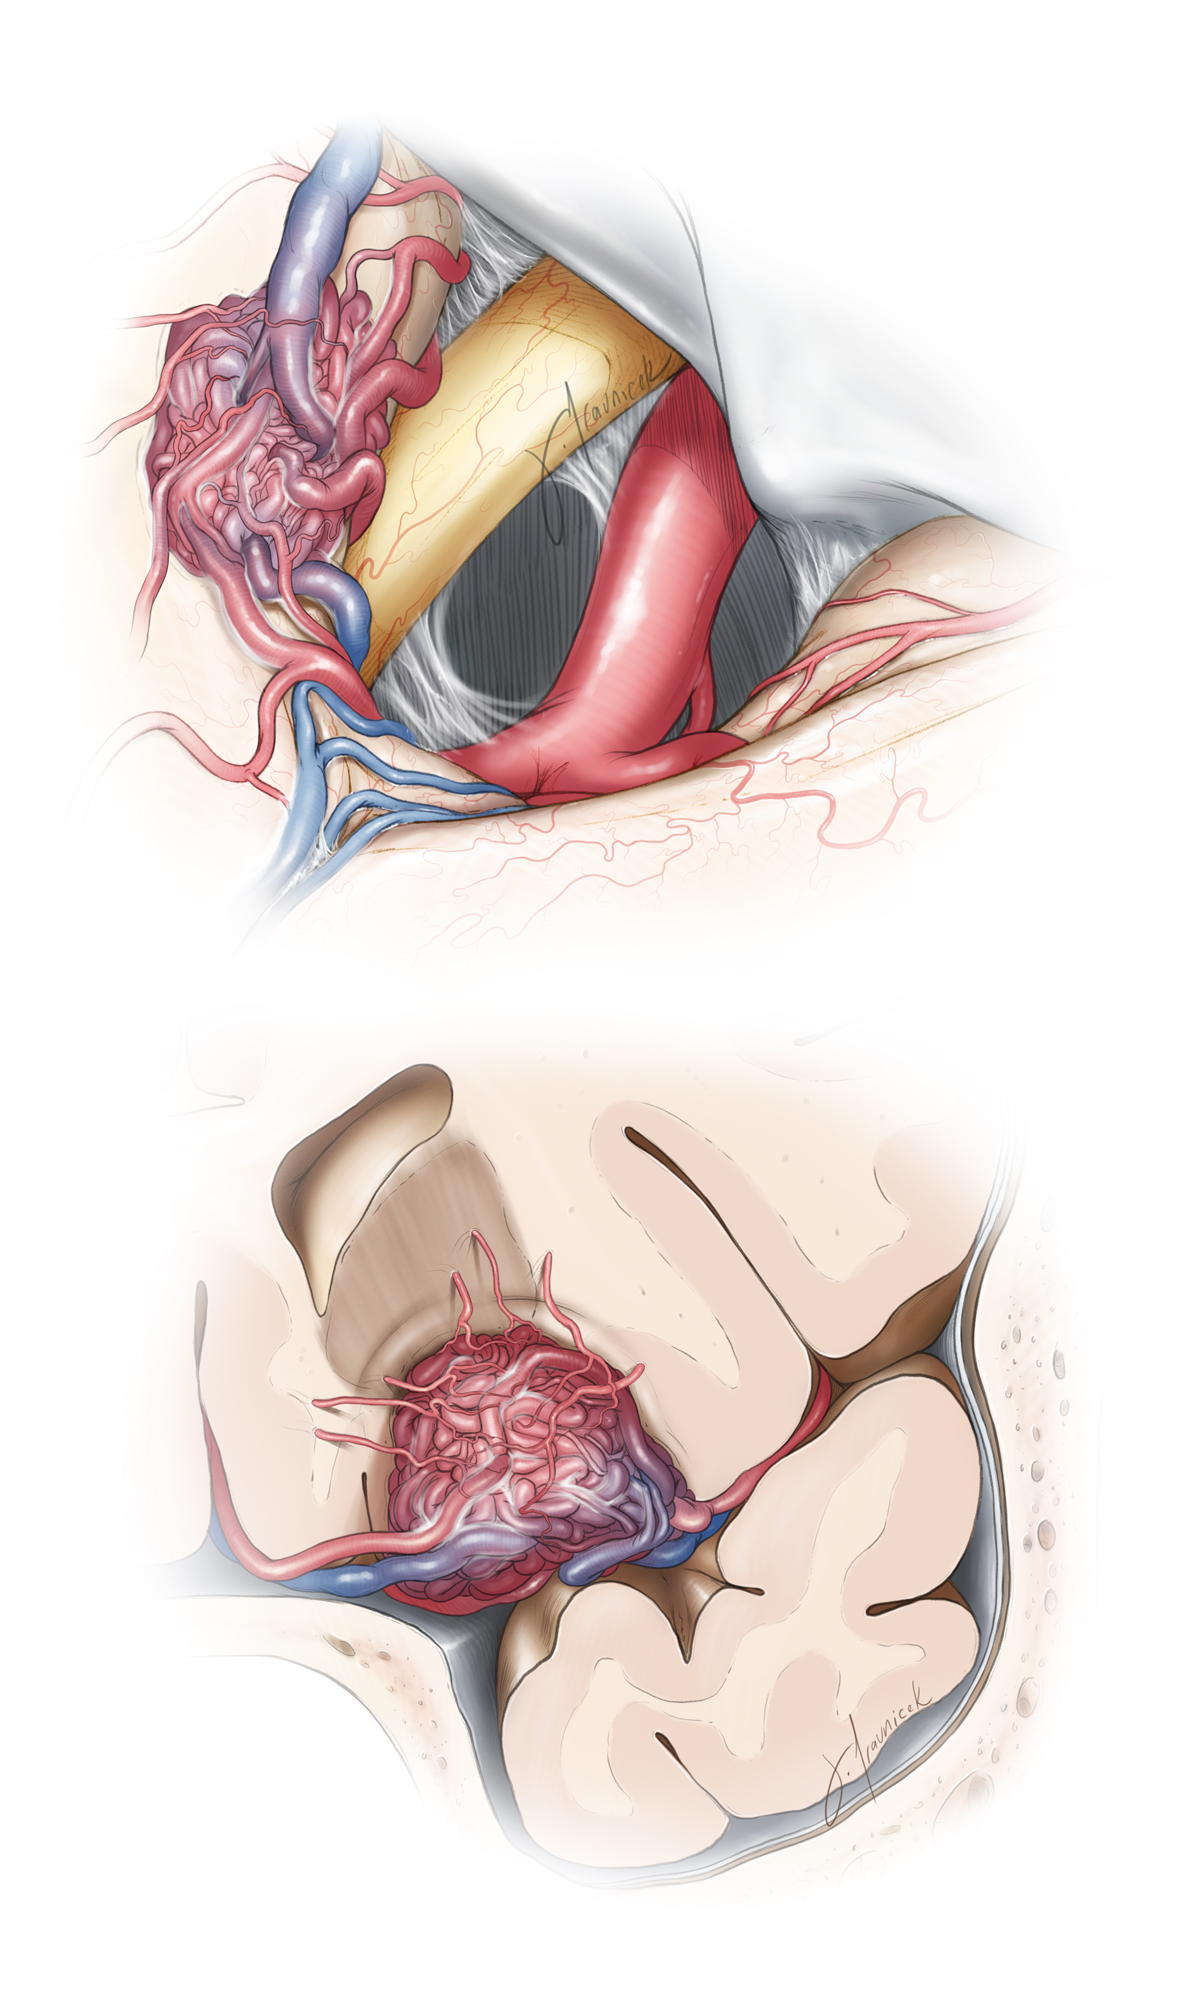 Figure 14: The vascular anatomy of a medial basal frontal AVM is illustrated. The medial ACA feeders can be dominant and potentially difficult to control during the early stages of the operation (surgeon's view, right-sided pterional approach, top sketch). The draining veins can limit the working angles of the surgeon and restrict the mobilization of the nidus after its circumferential disconnection. The primary draining vein should be spared while the secondary ones scarified after most of the nidus is isolated. The deep white matter feeders are within the surgeon's blind spot (coronal view, bottom sketch).